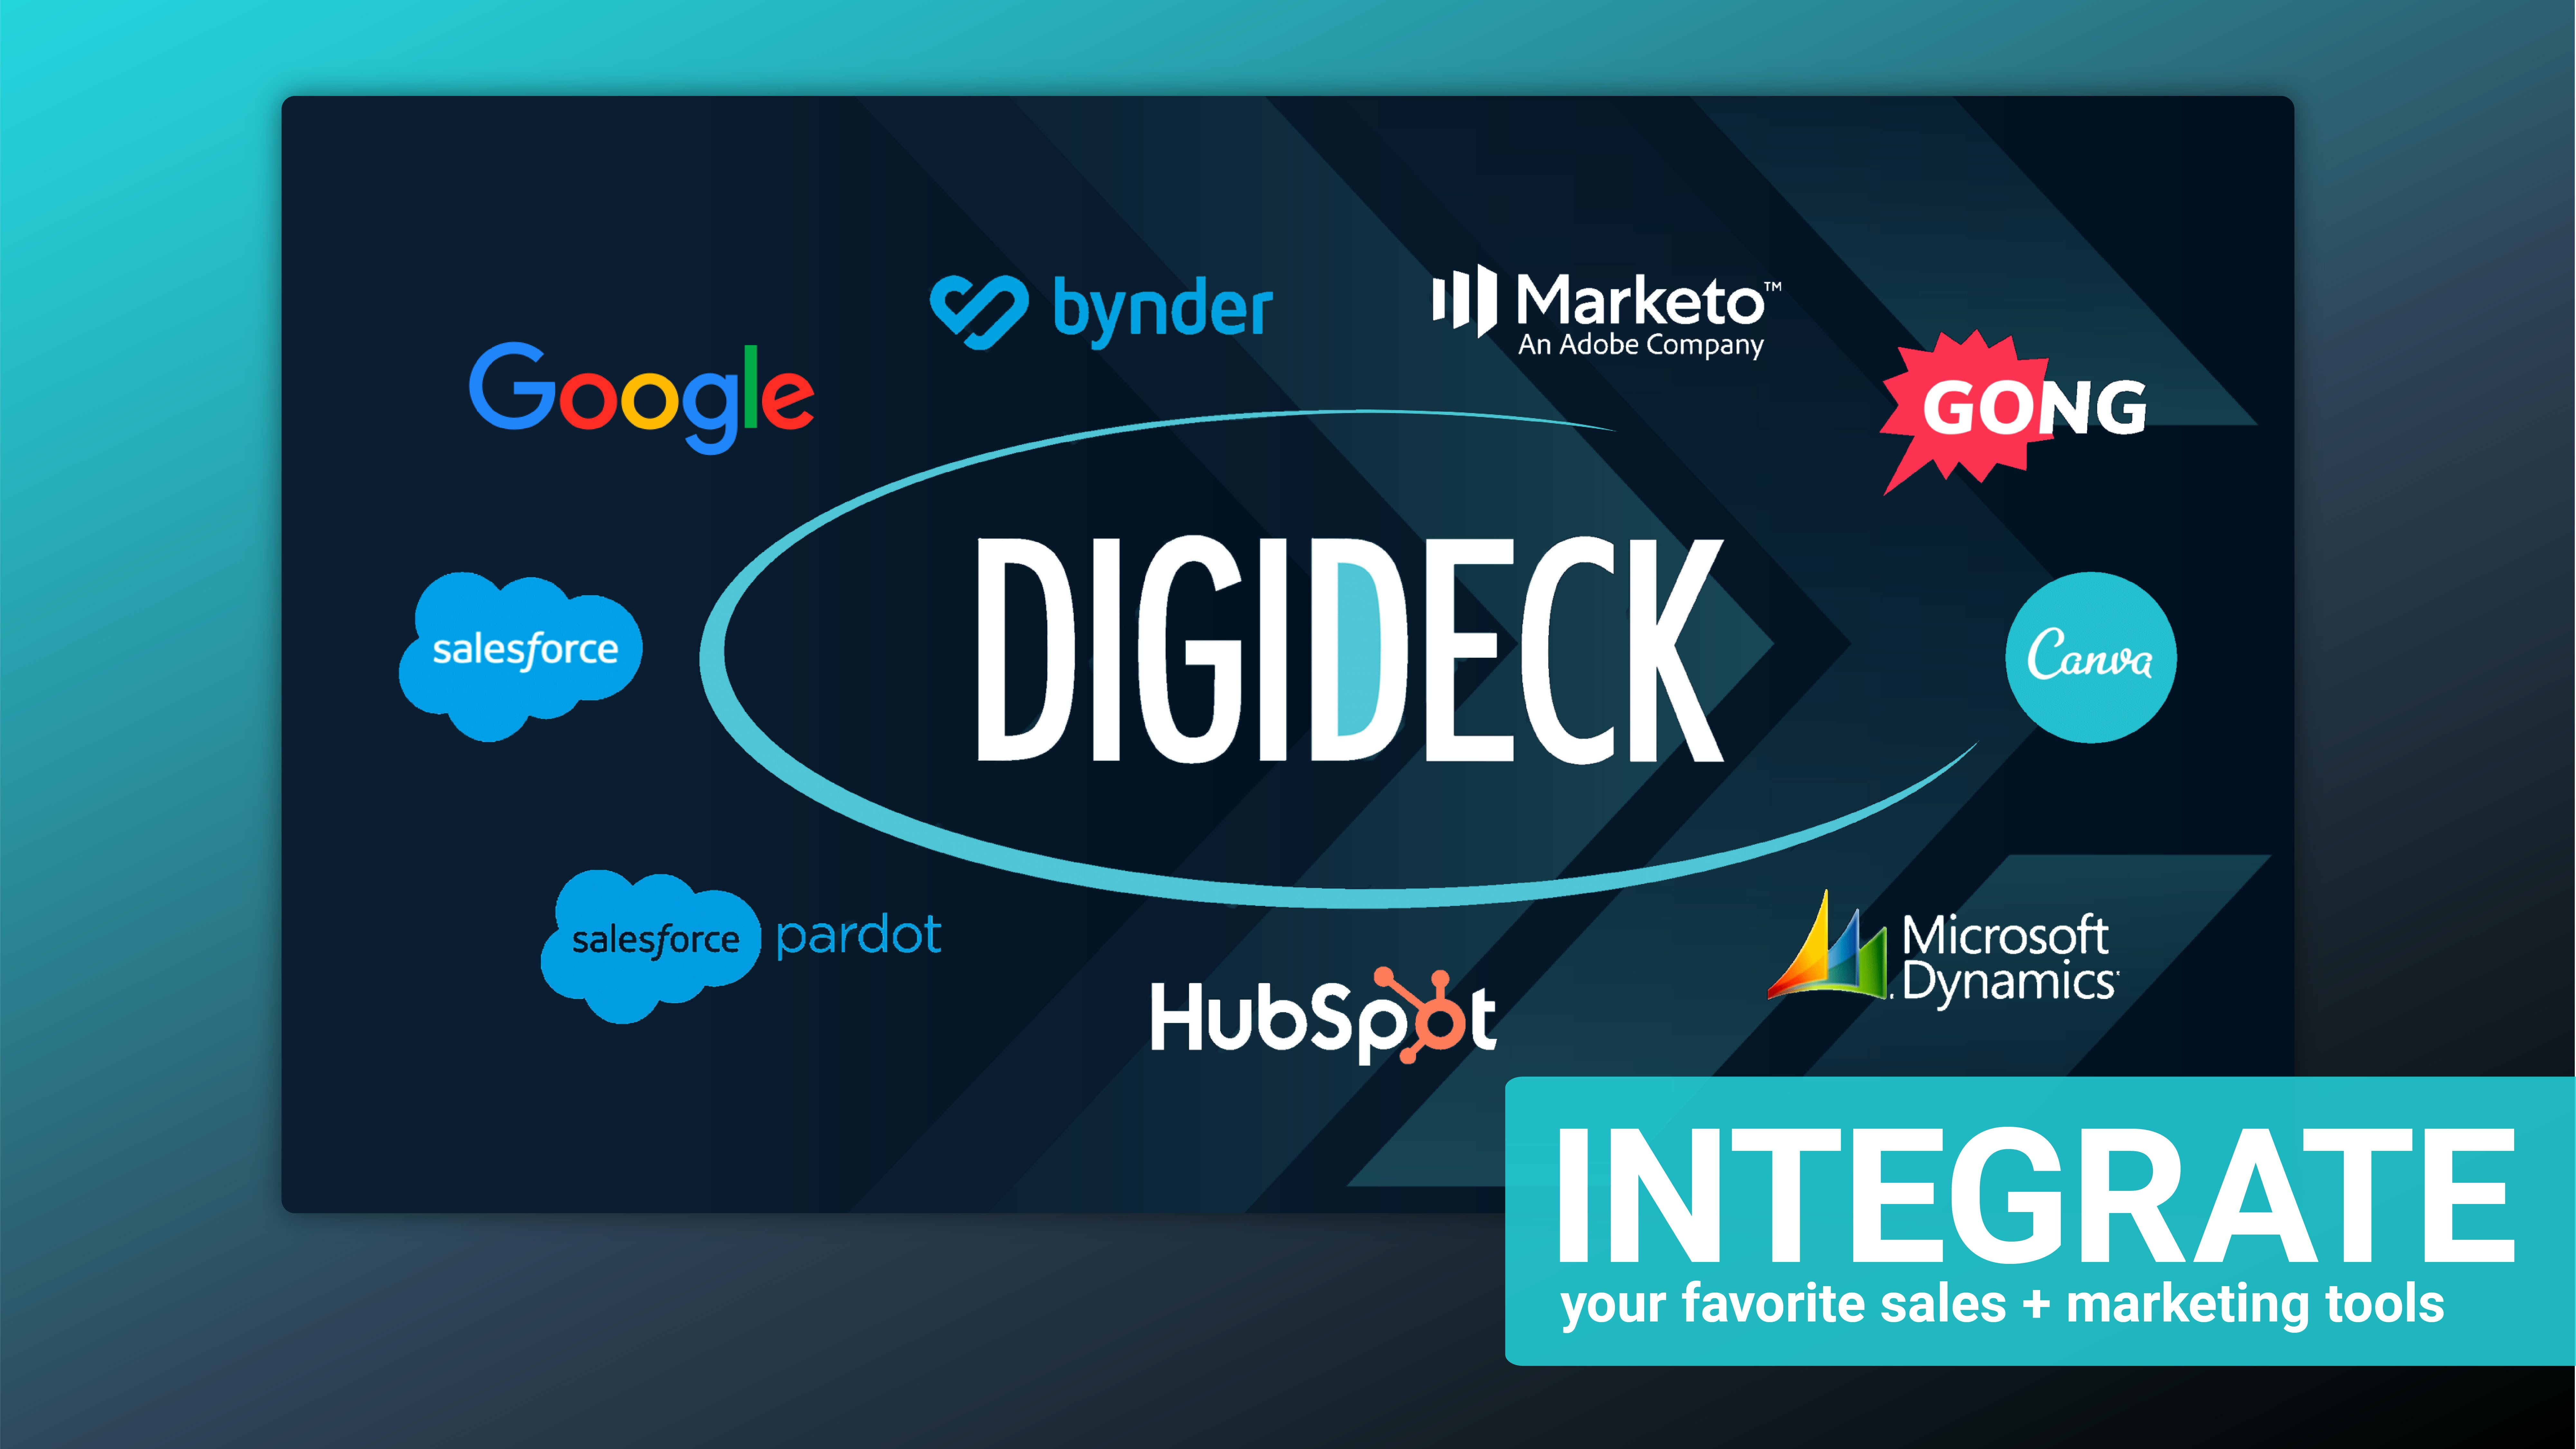 Digideck Software - Built for any and every B2B or Enterprise Business organization, our platform integrates with all your favorite + most-used tools for an enhanced user experience.